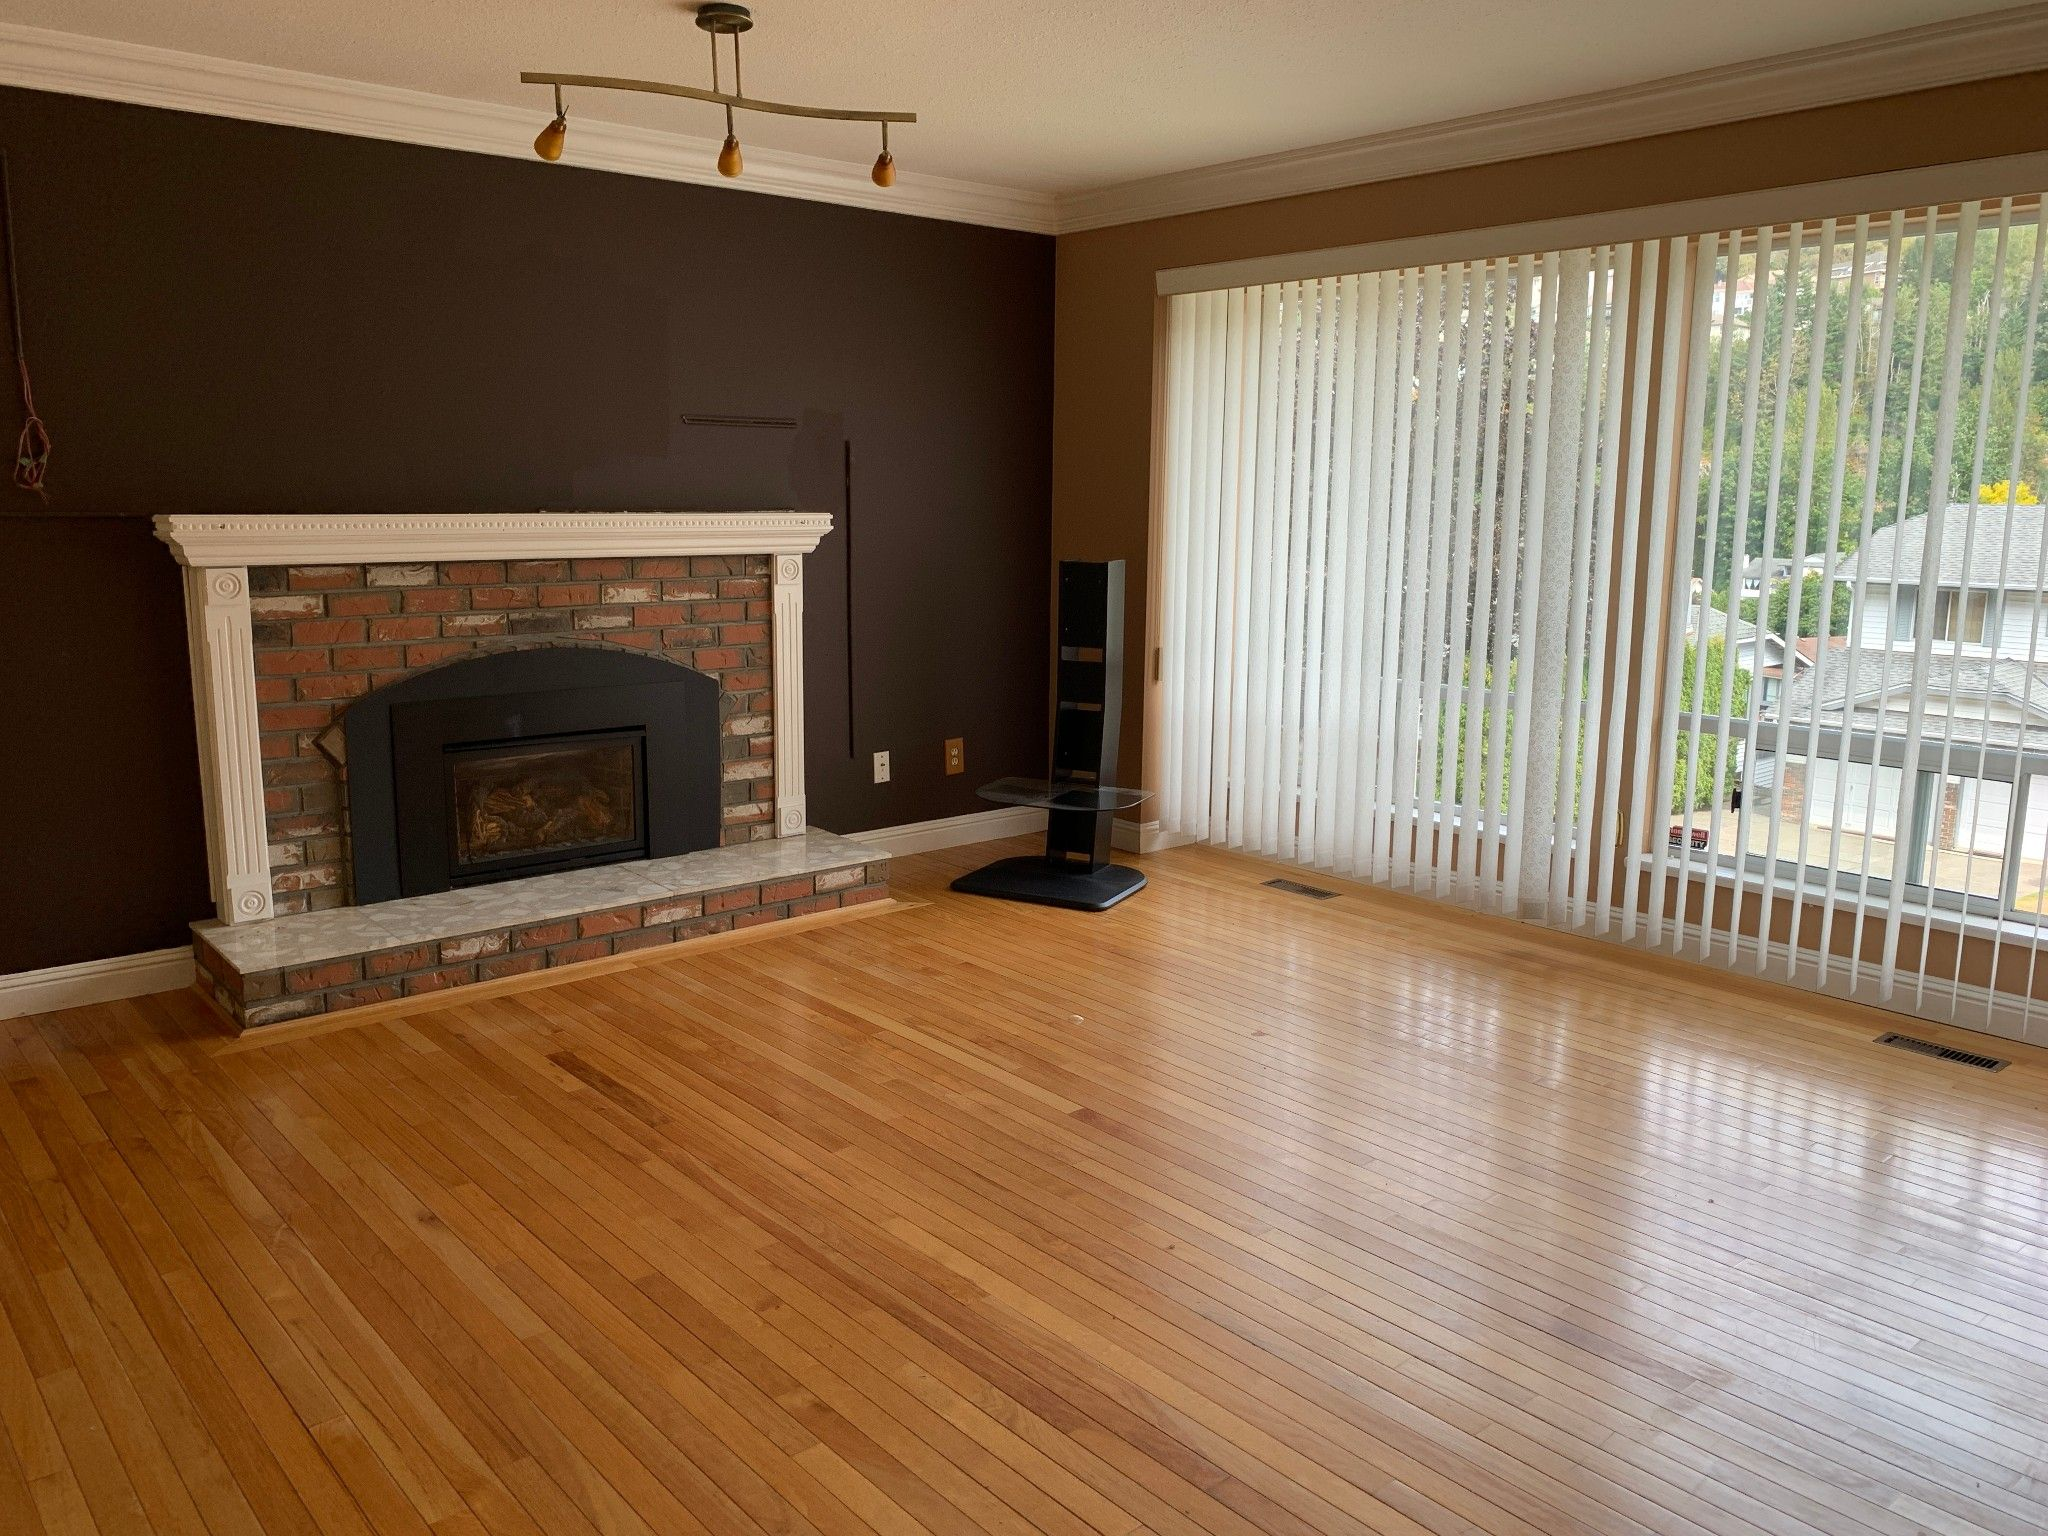 Photo 2: Photos: 2289 Woodstock Dr. in Abbotsford: Abbotsford East House for rent